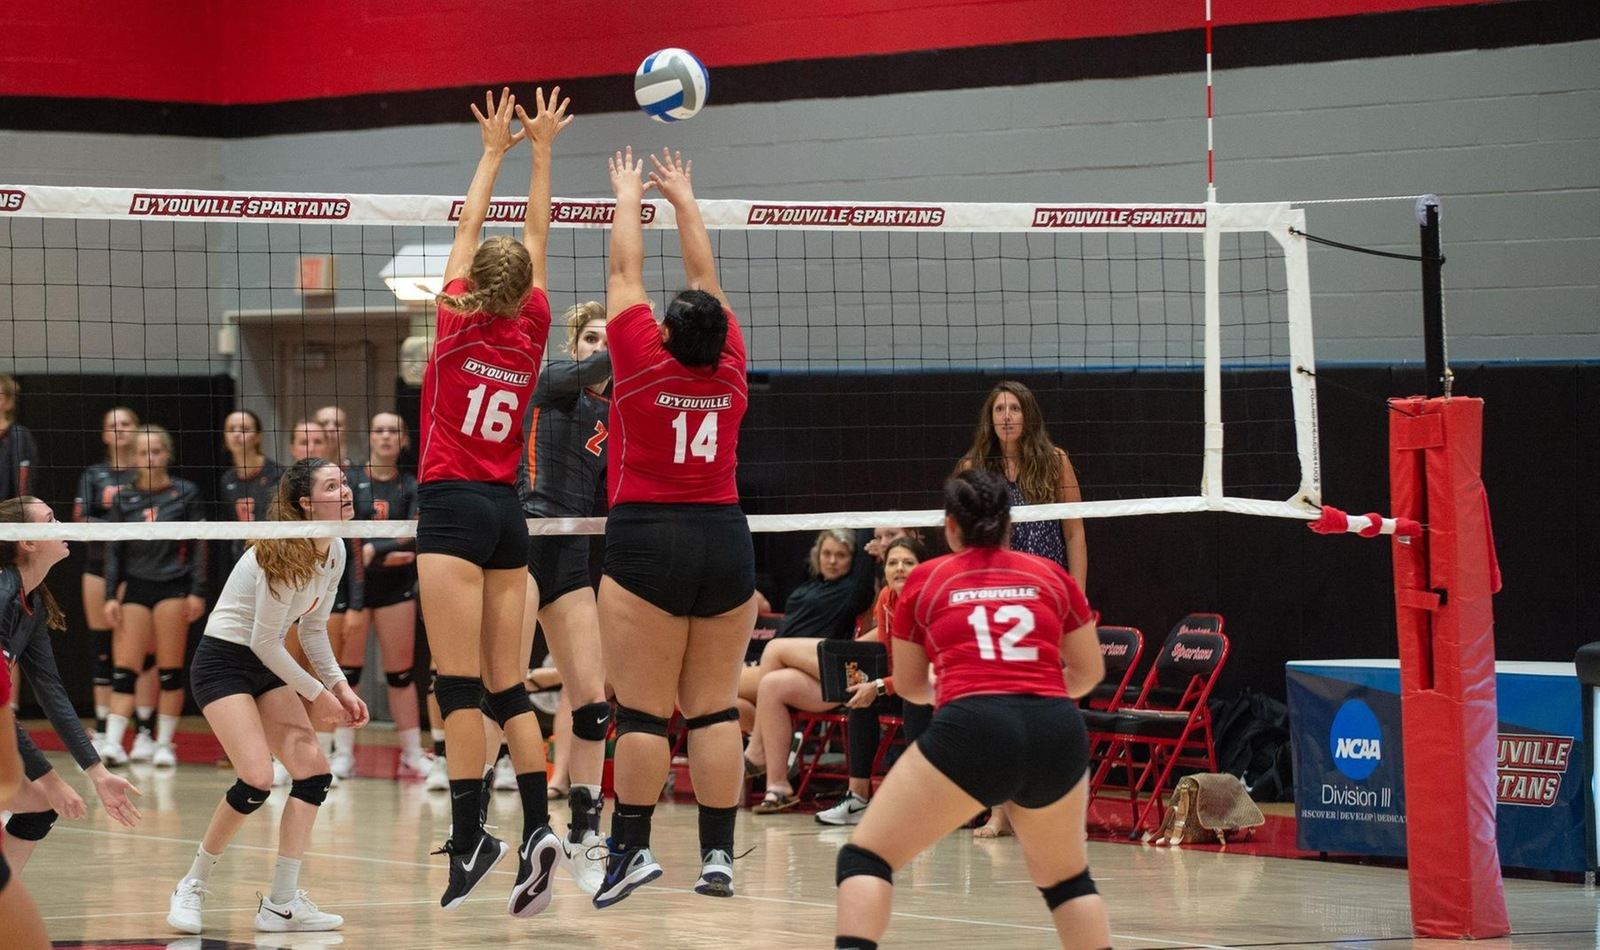 D'Youville Drops Home Opener to Buff State